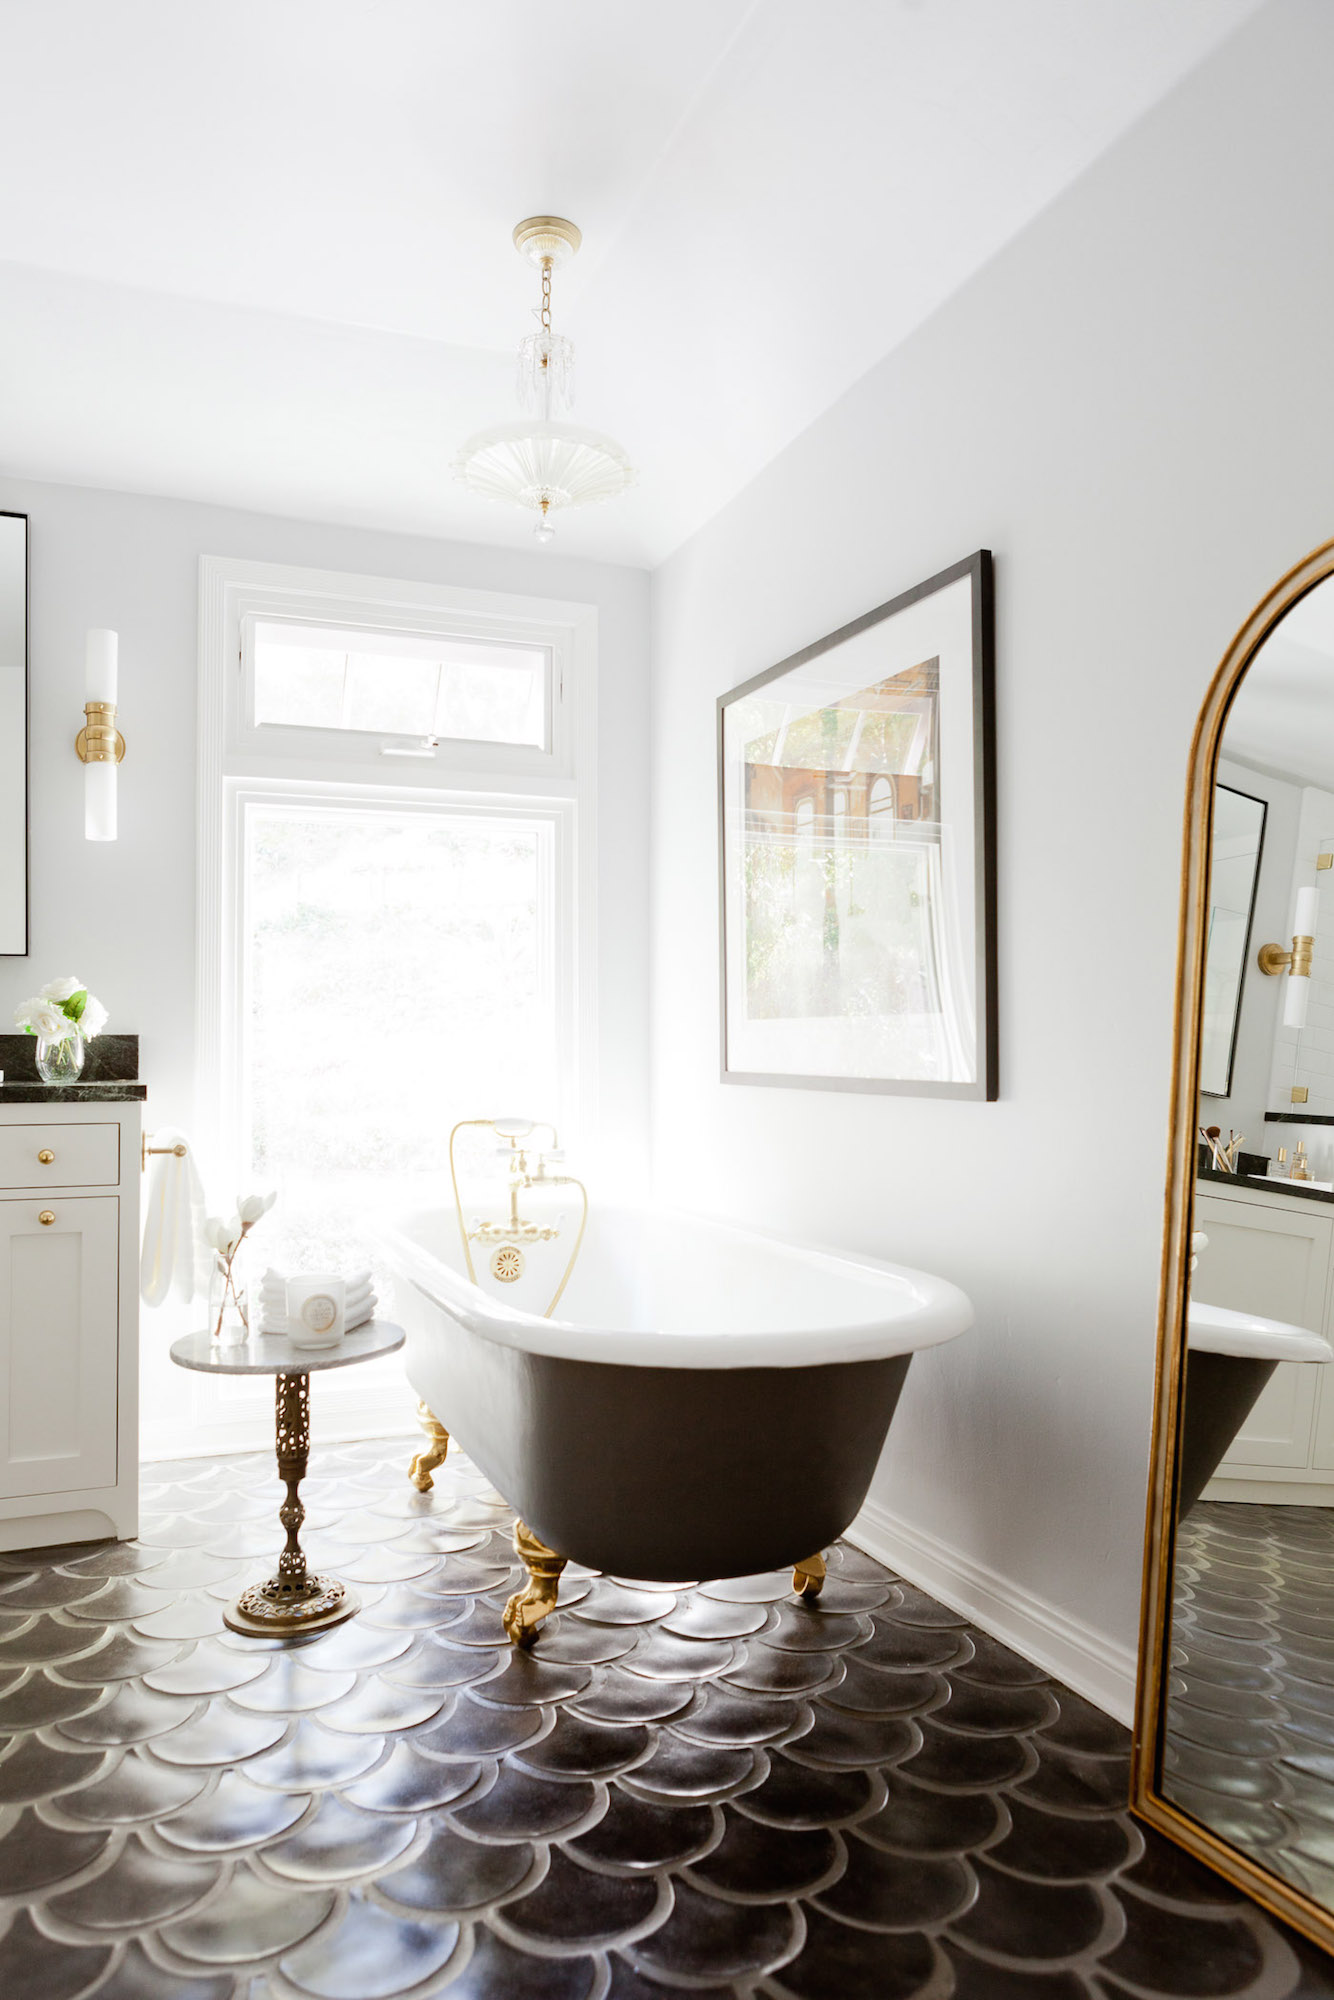 Feel Inspired By These Bathroom Tile Trends For 2019 11 Bathroom Tile Trends Feel Inspired By These Bathroom Tile Trends For 2019 Feel Inspired By These Bathroom Tile Trends For 2019 12